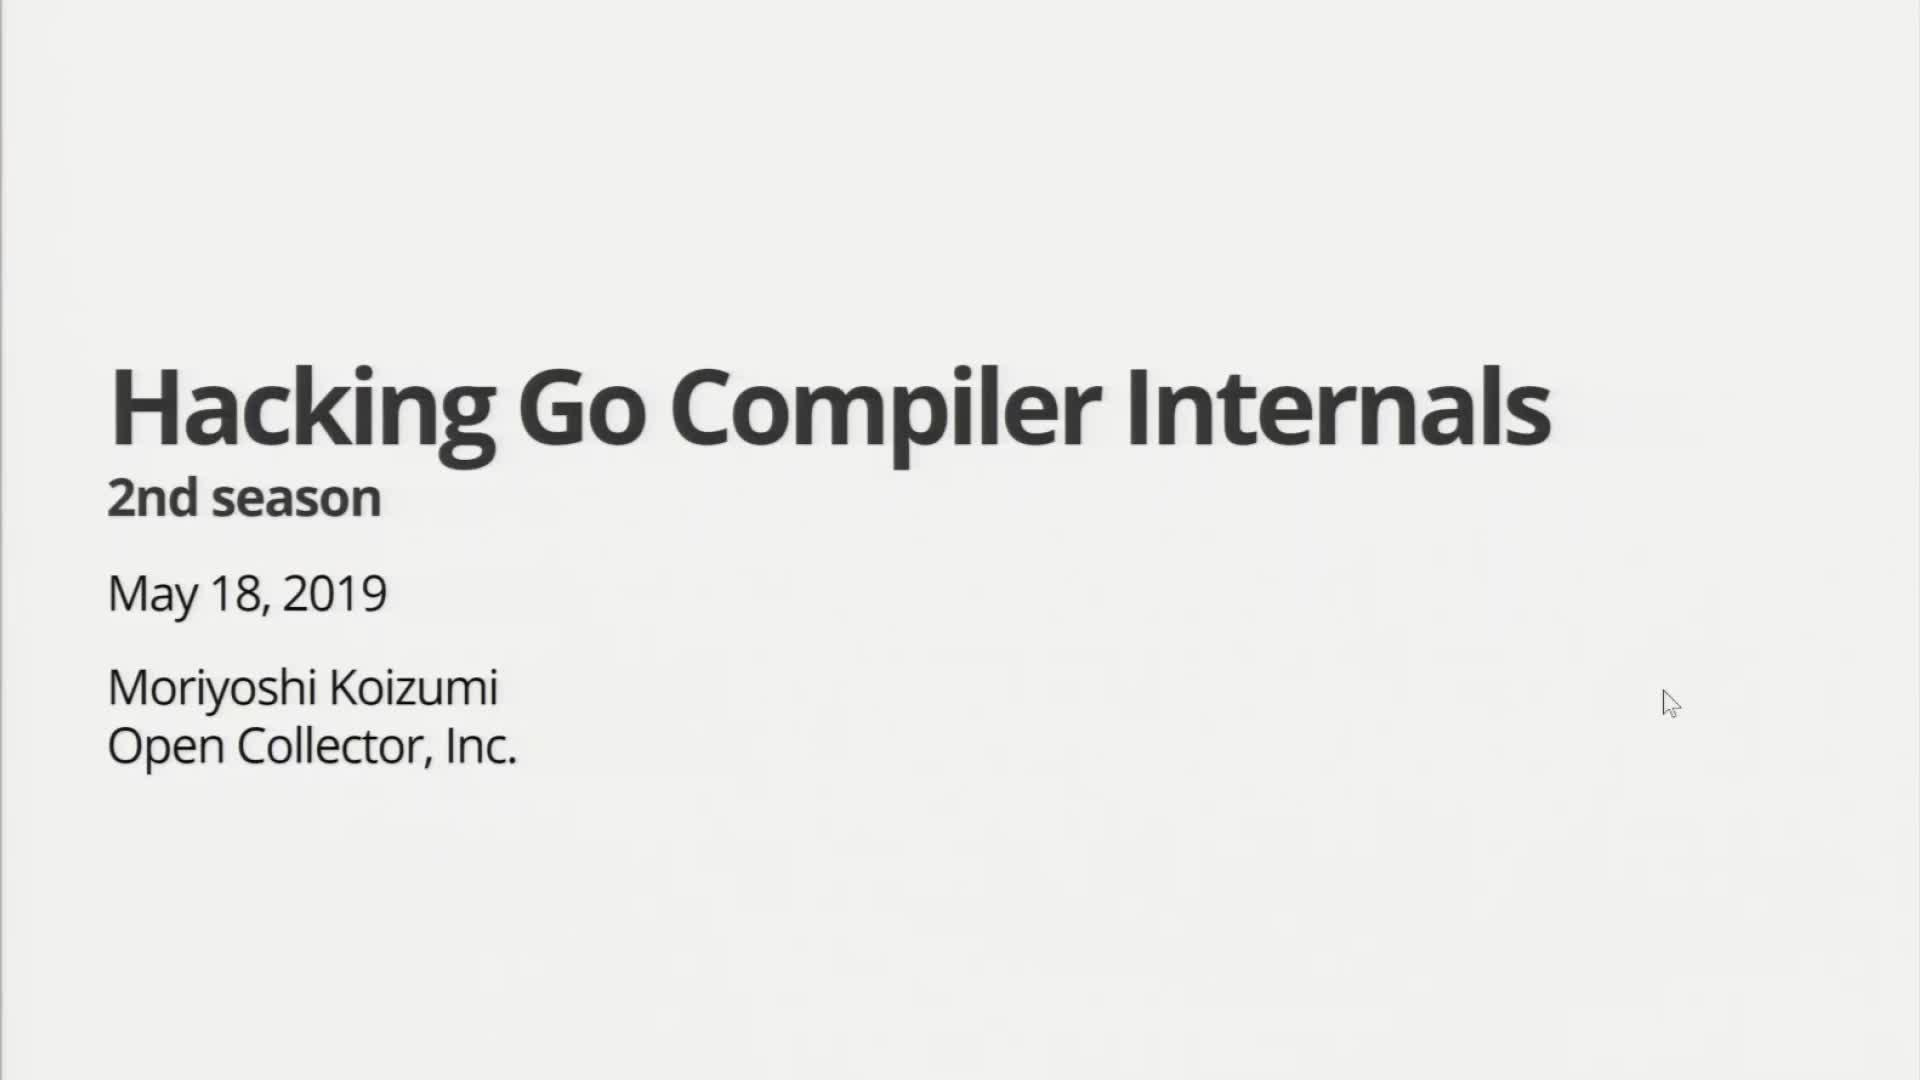 Hacking Go Compiler Internals 2nd season